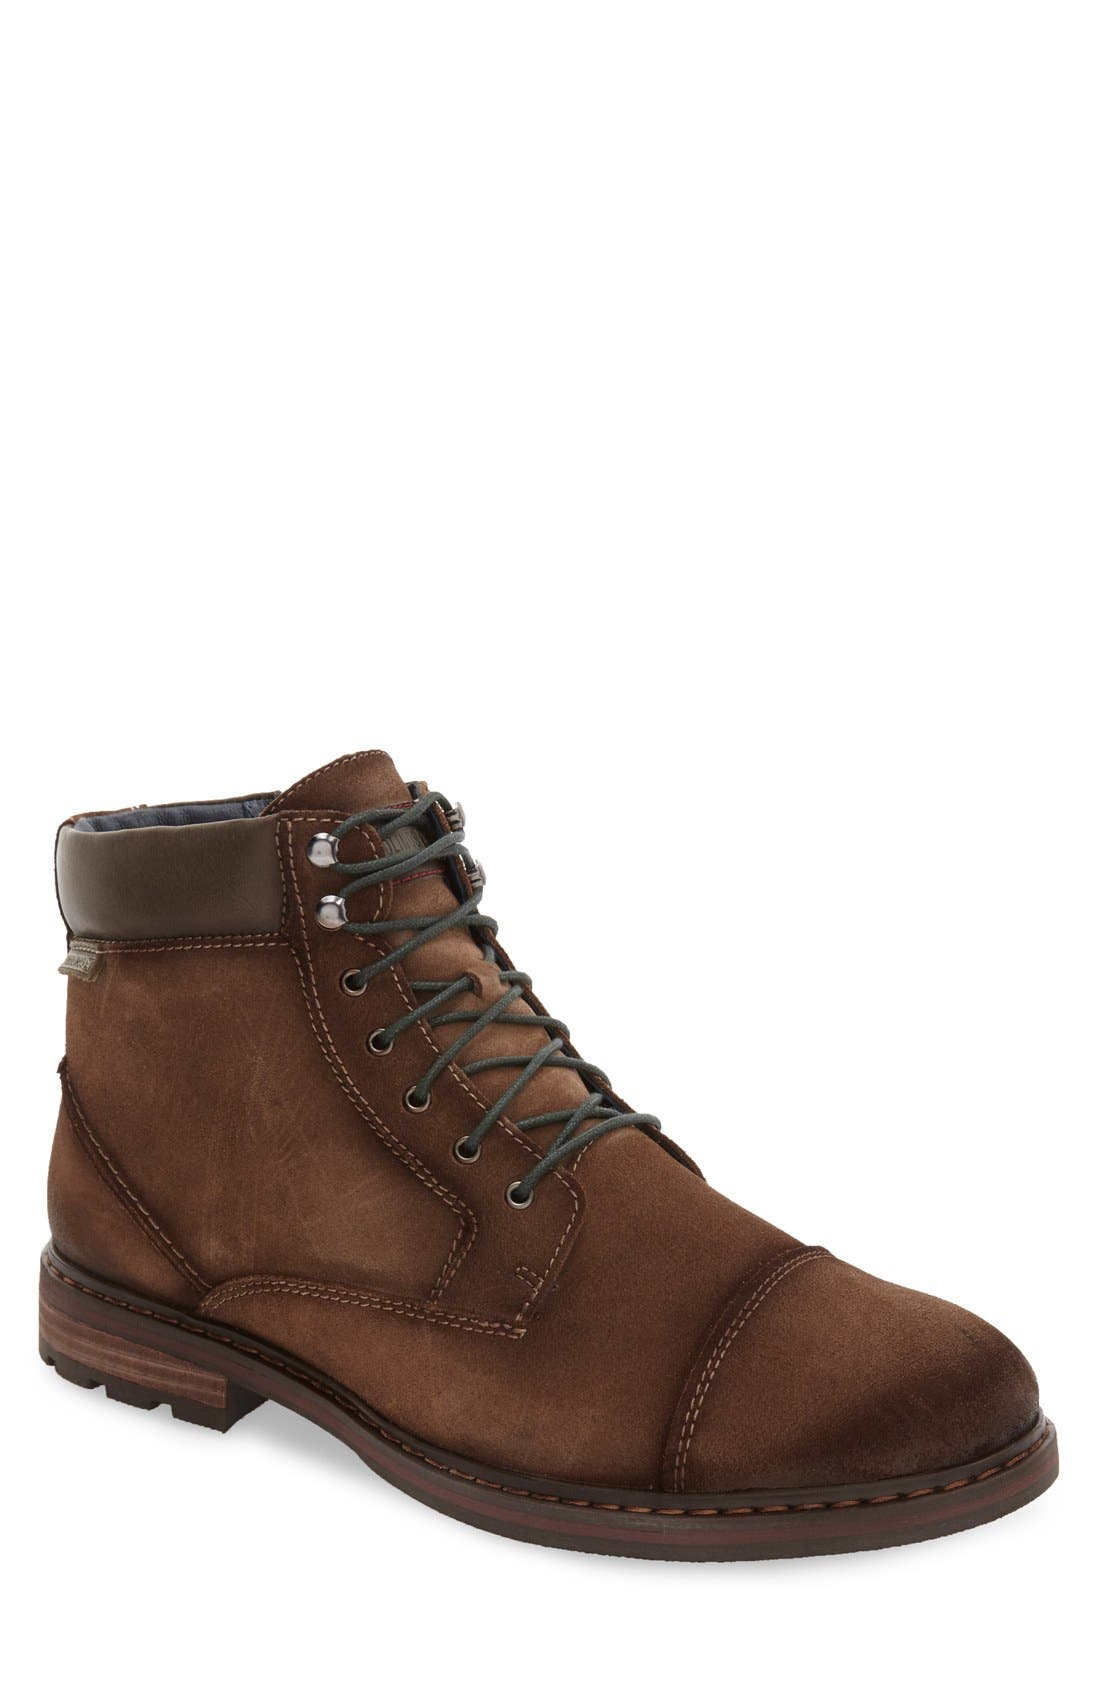 'Cacers' Lace-Up Zip Boot,                             Main thumbnail 1, color,                             200